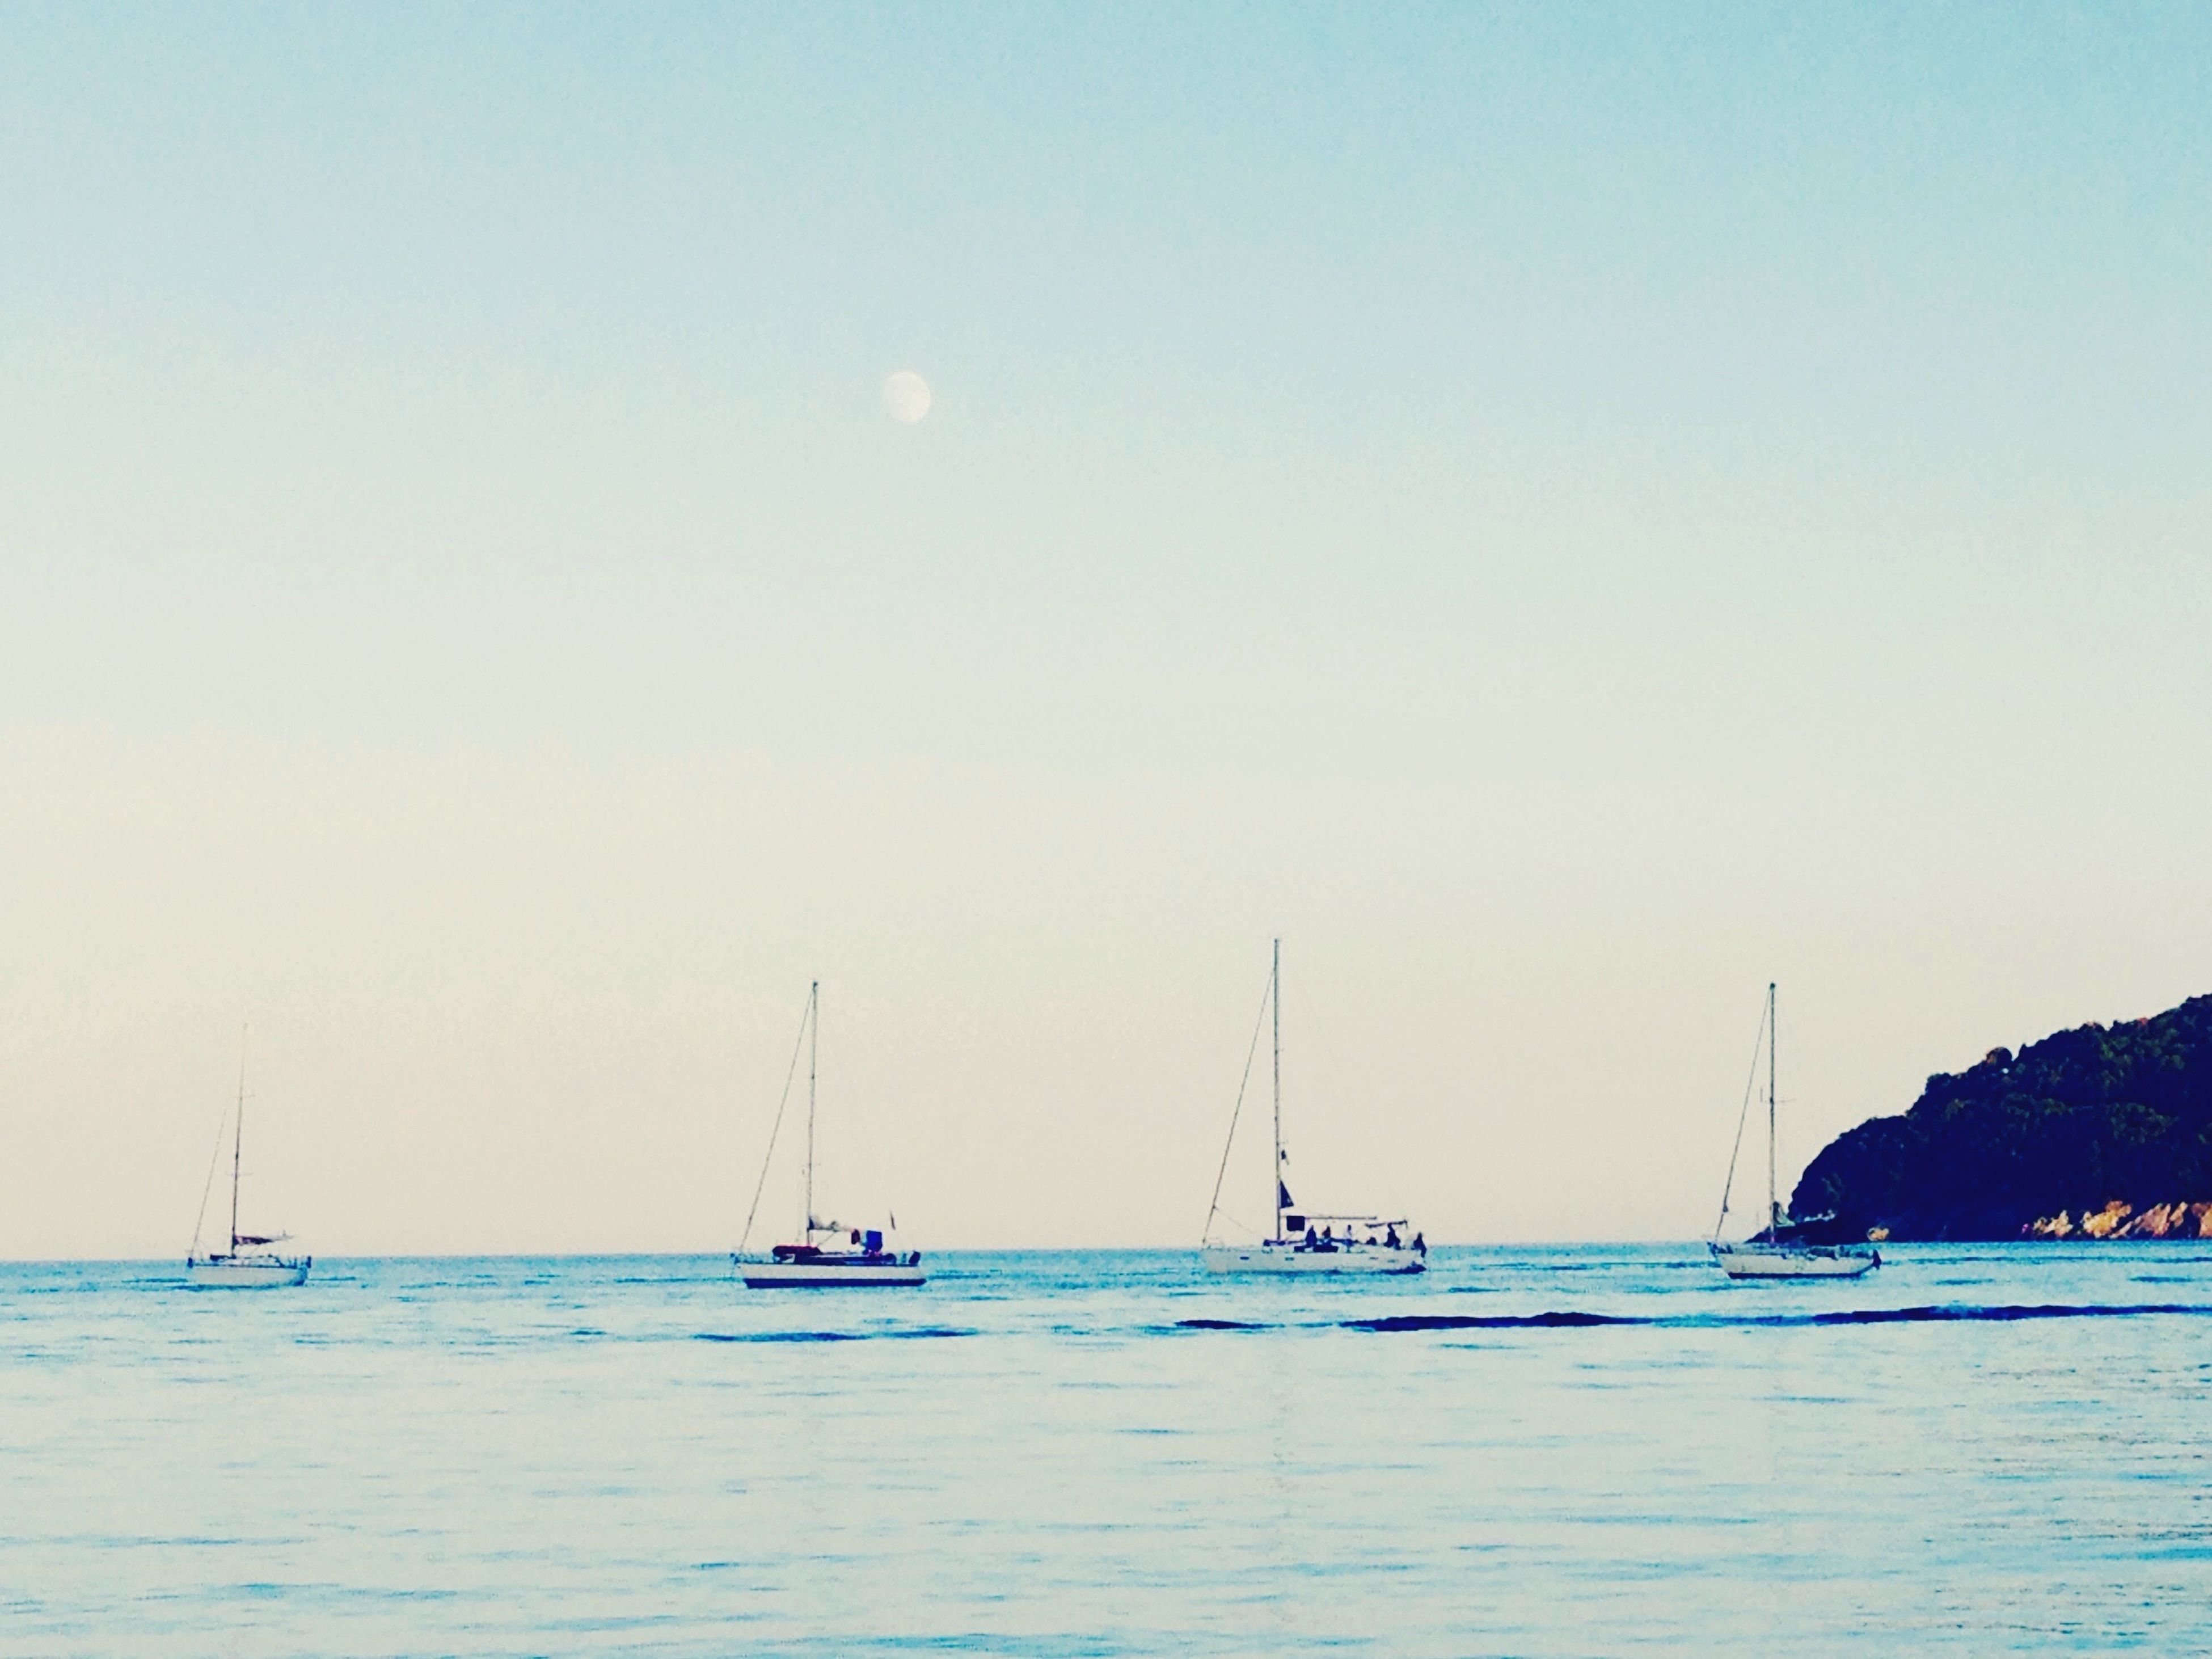 sea, nautical vessel, water, transportation, boat, mode of transport, waterfront, clear sky, copy space, horizon over water, tranquil scene, tranquility, scenics, sailboat, beauty in nature, nature, blue, moored, travel, beach